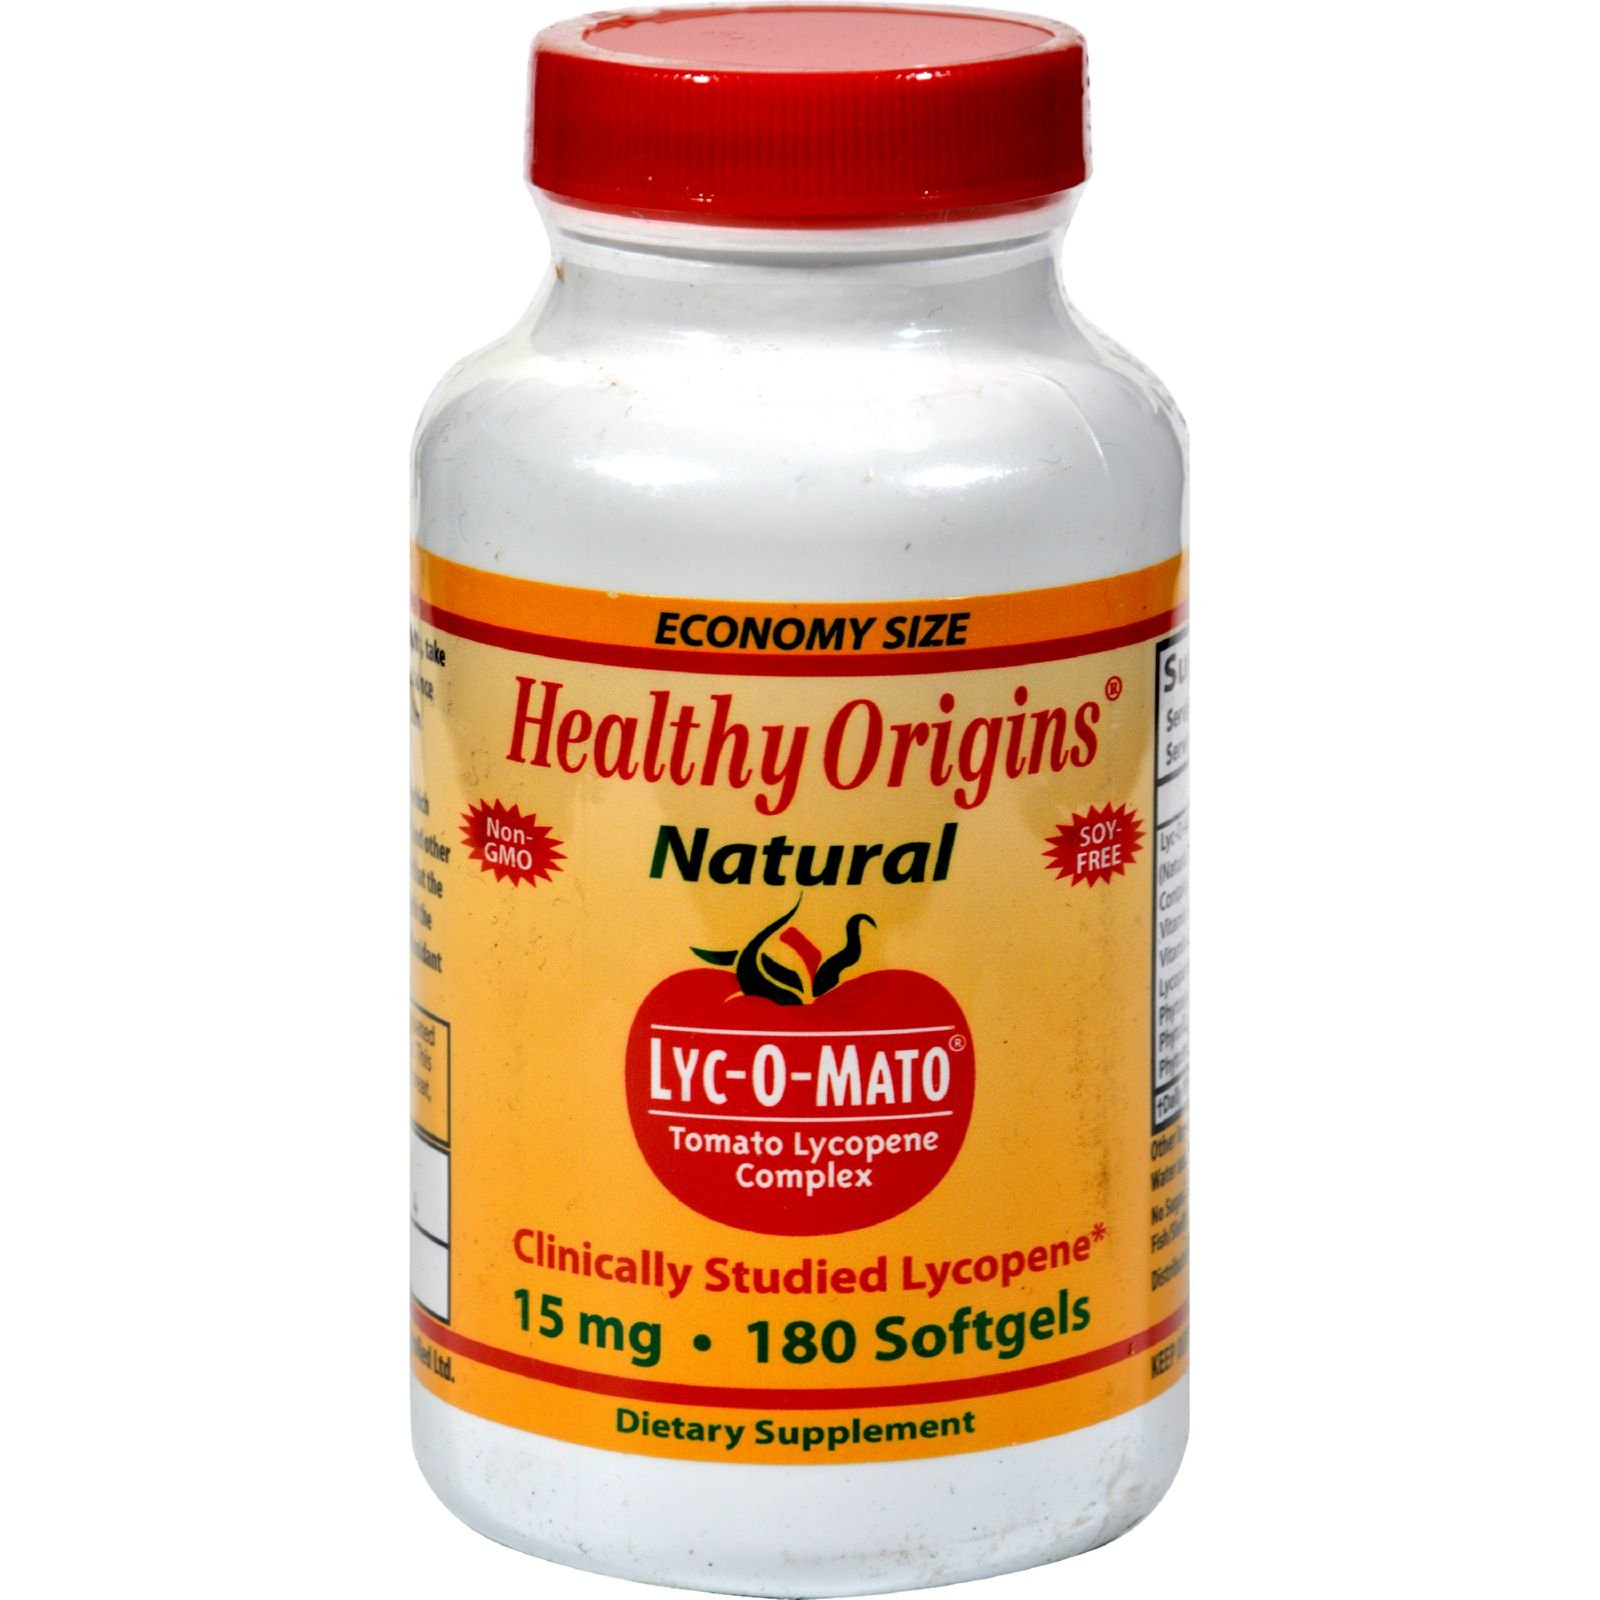 Healthy Origins LYC-O-Mato - 15 mg - Non GMO - No Soy - 180 Softgels (Pack of 2) by Healthy Origins